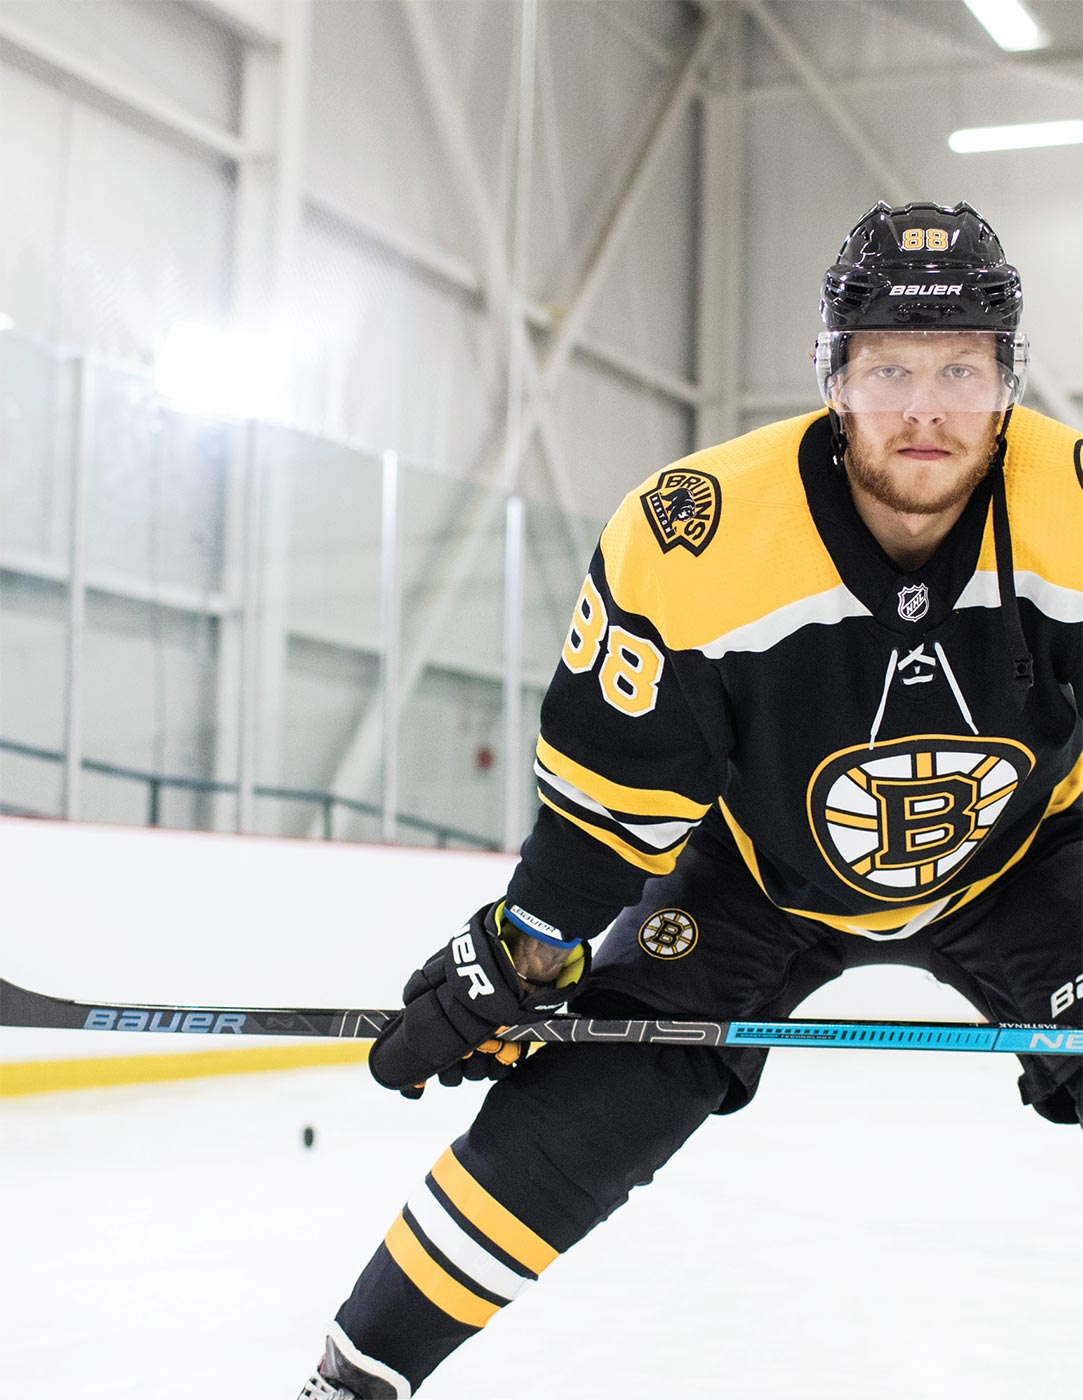 David Pastrnak Bauer Nexus 2N Pro | Source For Sports